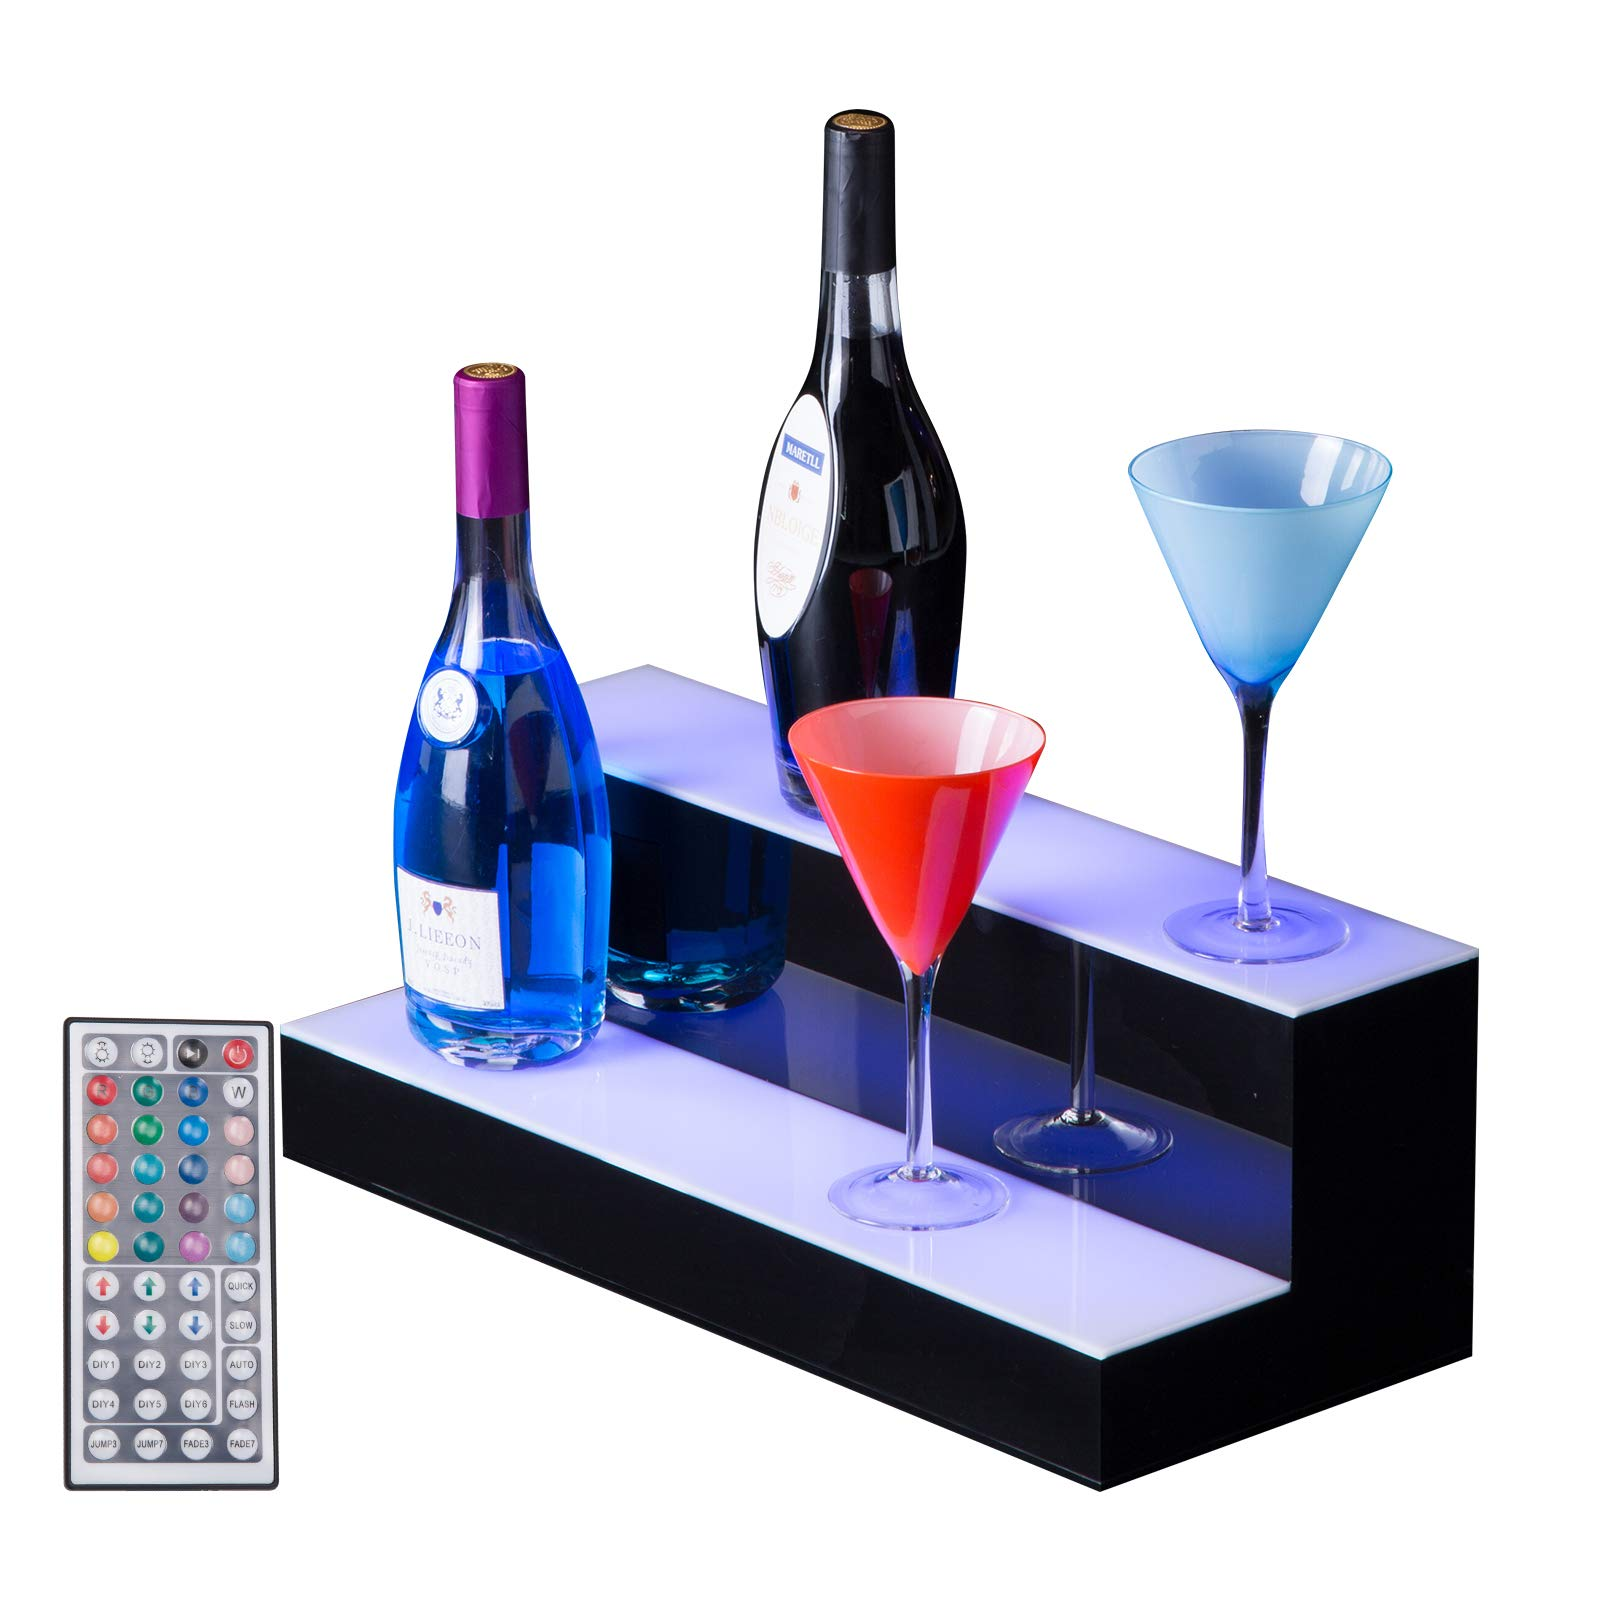 SUNCOO LED Lighted Liquor Bottle Display 20'' 2 Step Illuminated Bottle Shelf 2 Tier Home Bar Bottle Shelf Drinks Lighting Shelves High Gloss Black Finish with Remote Control